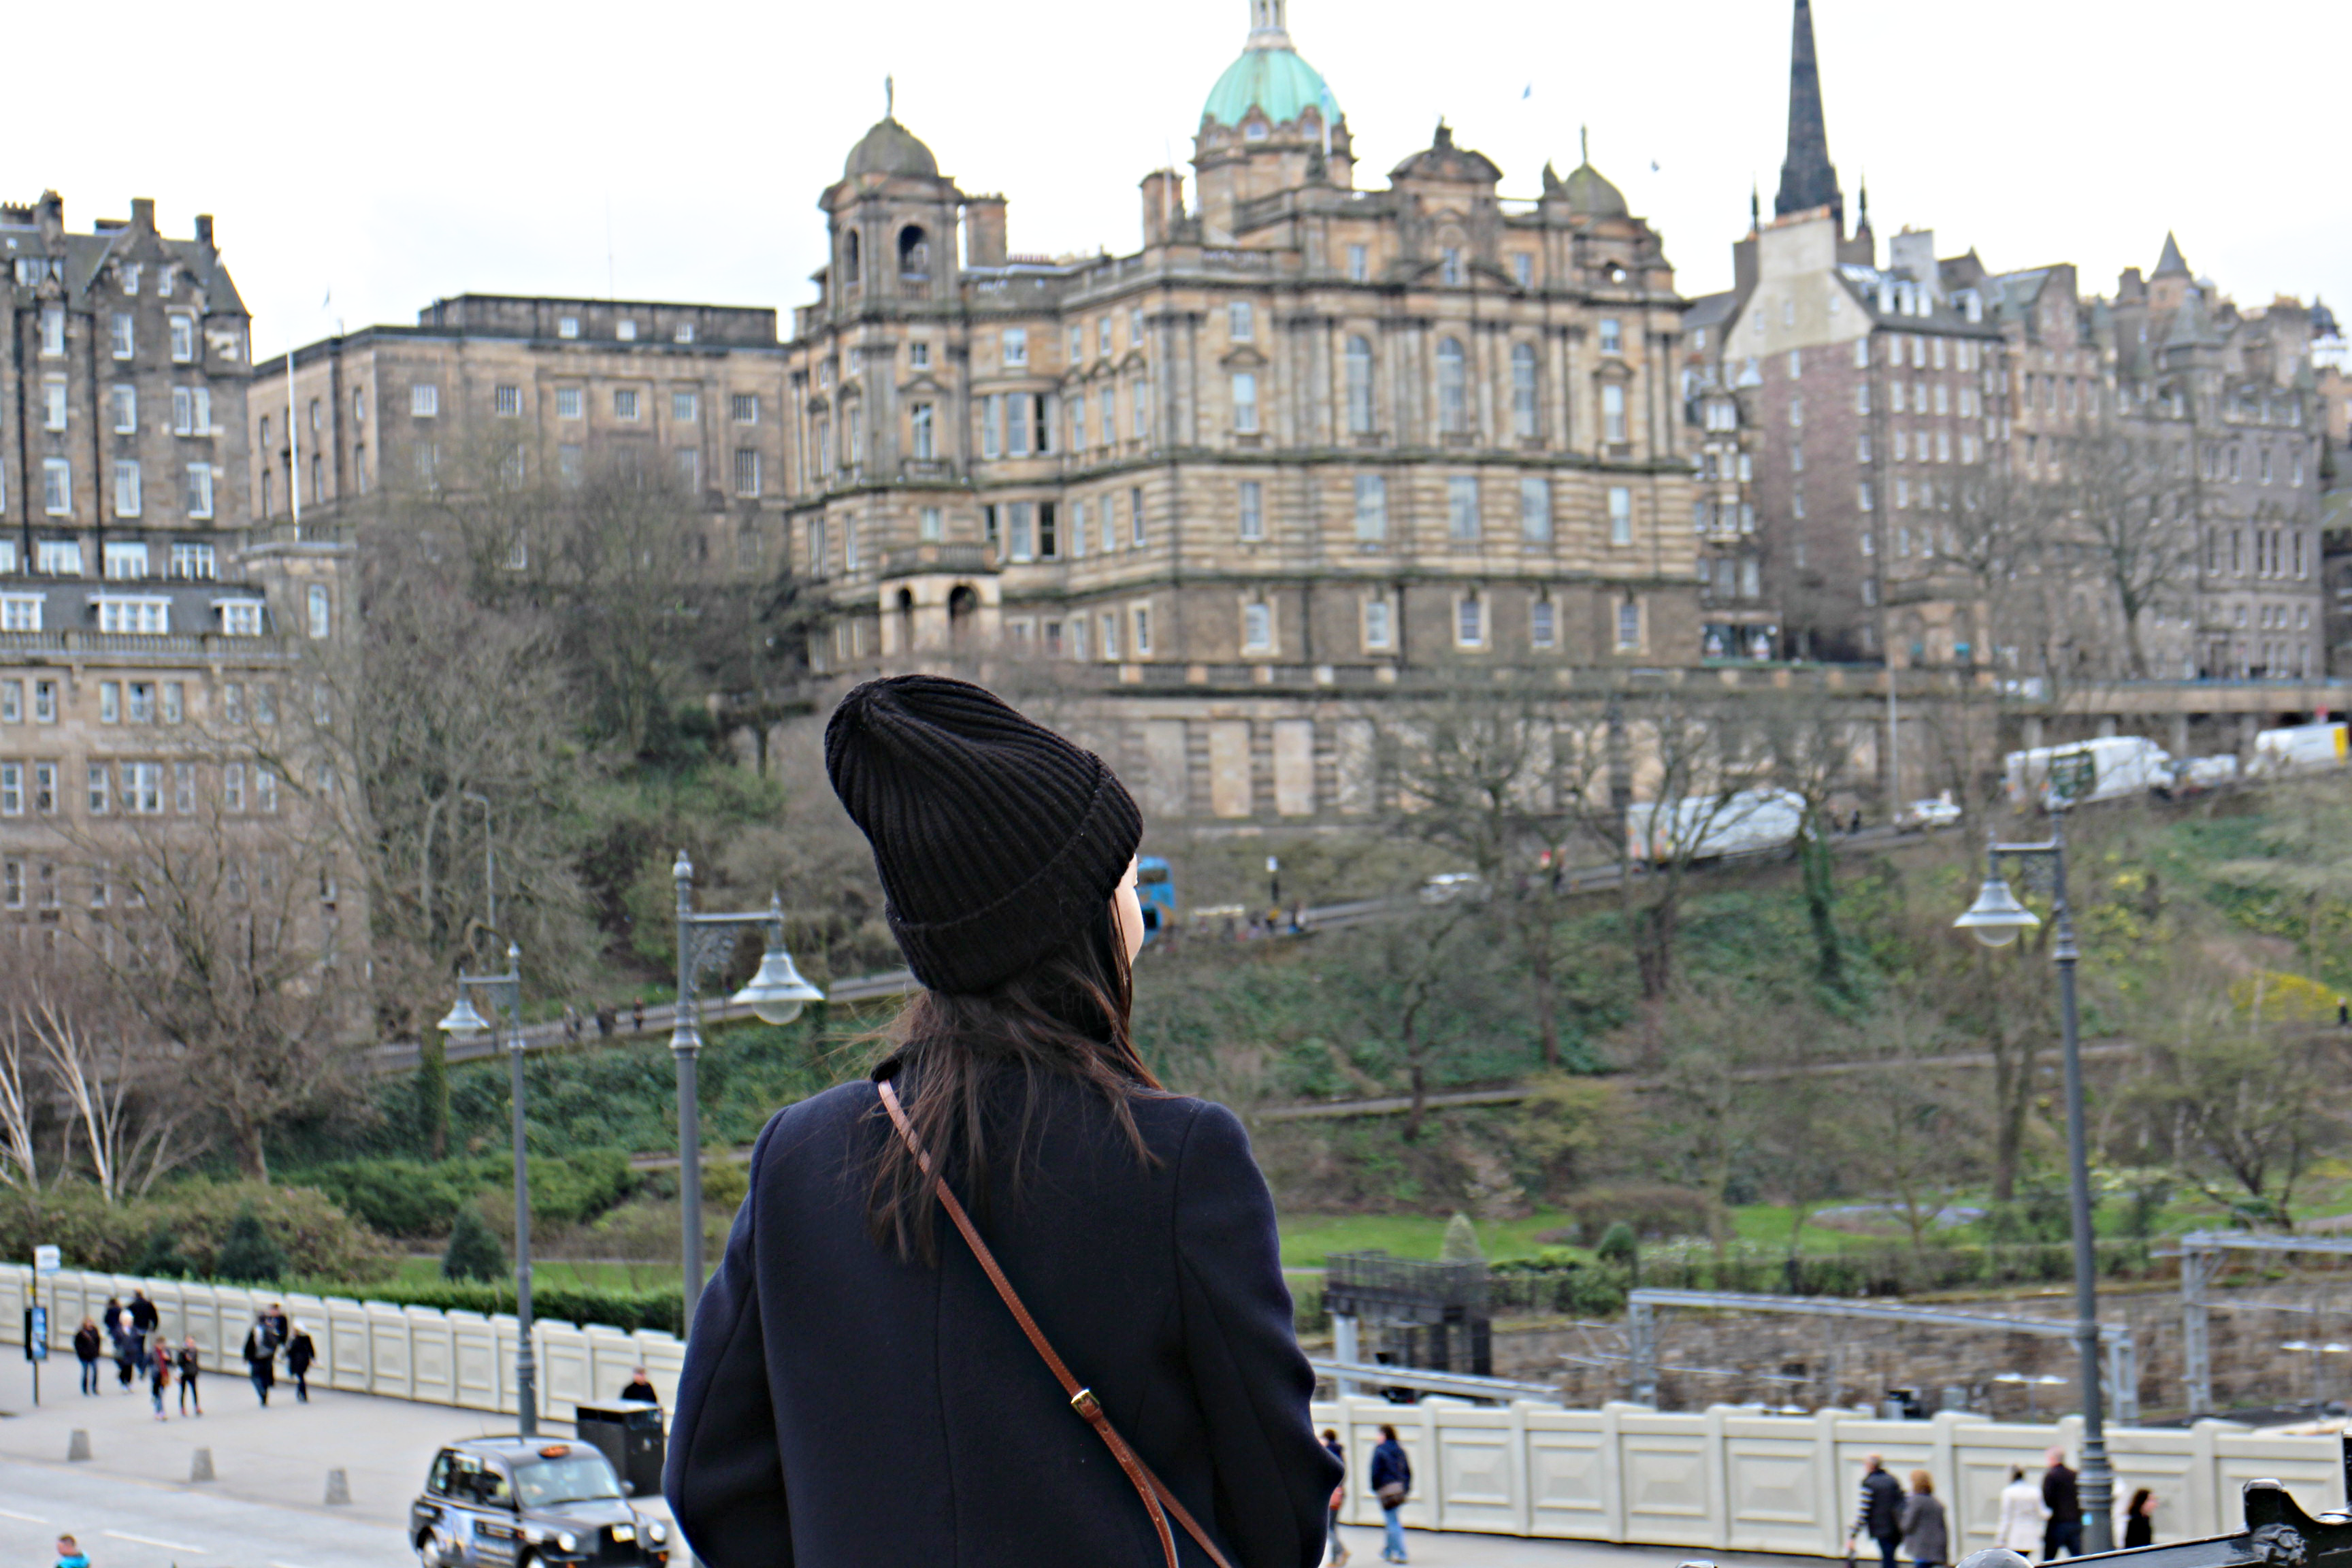 edinburgh travels